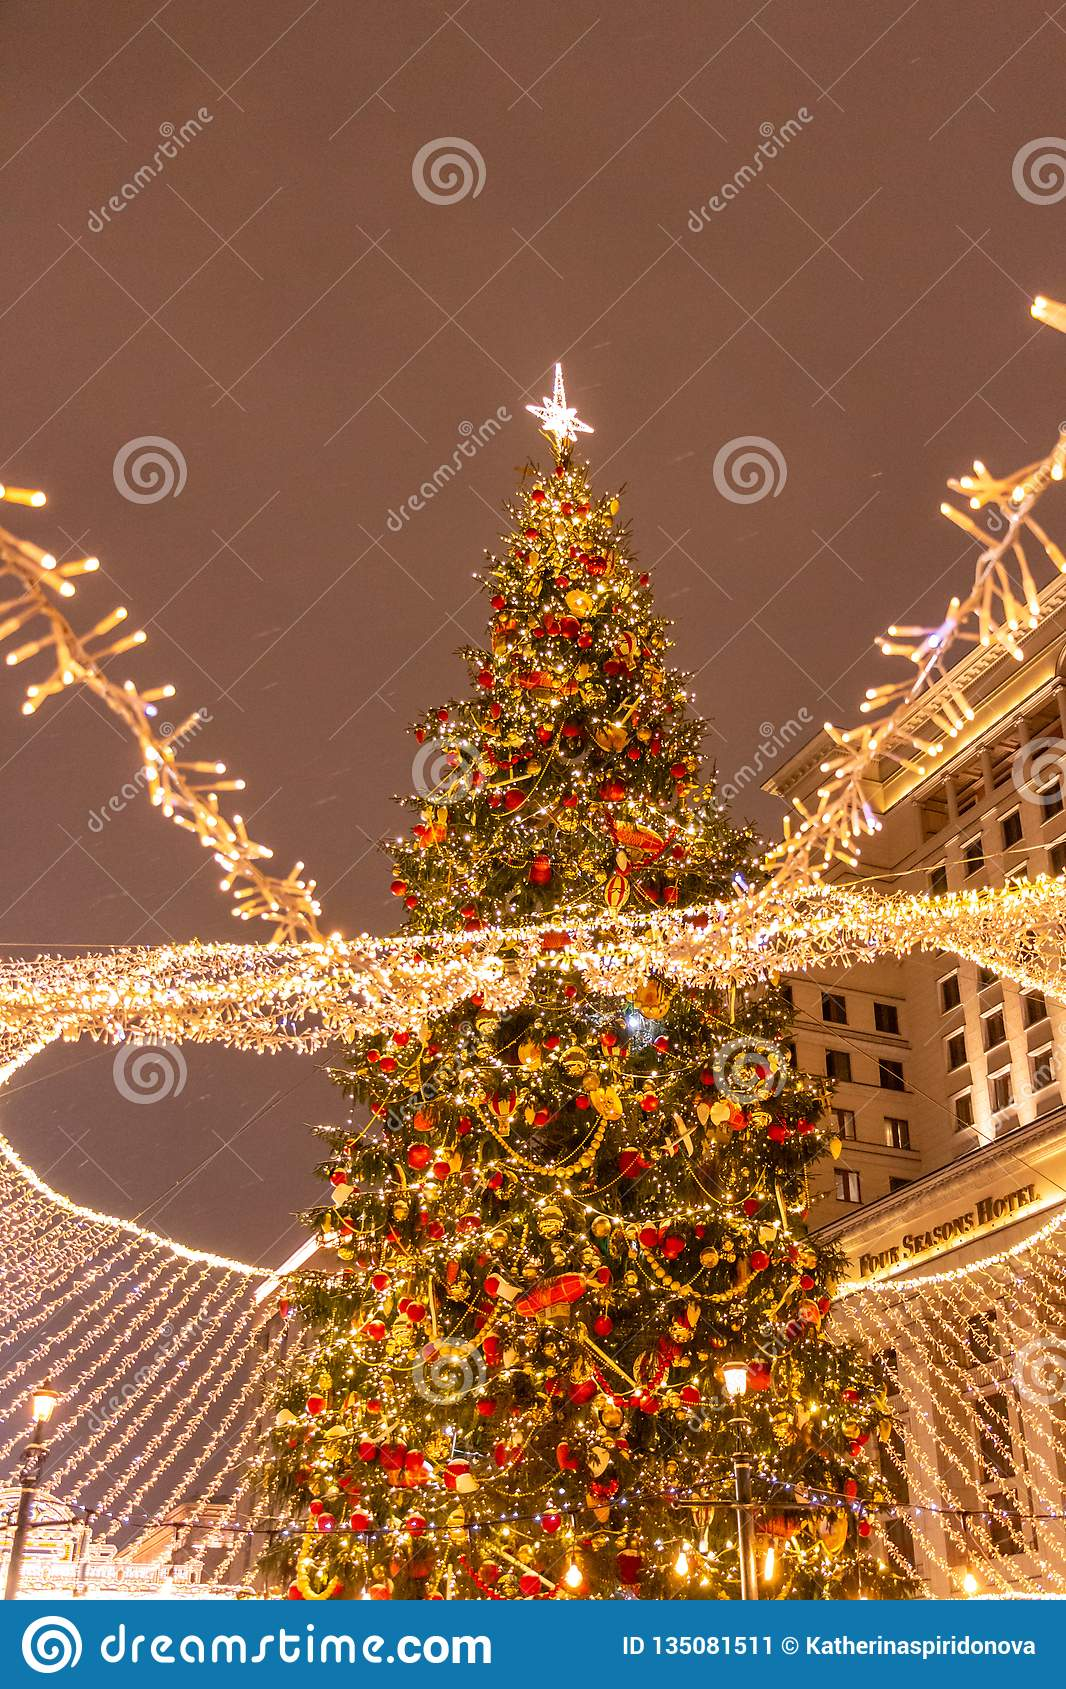 Christmas tree on red square